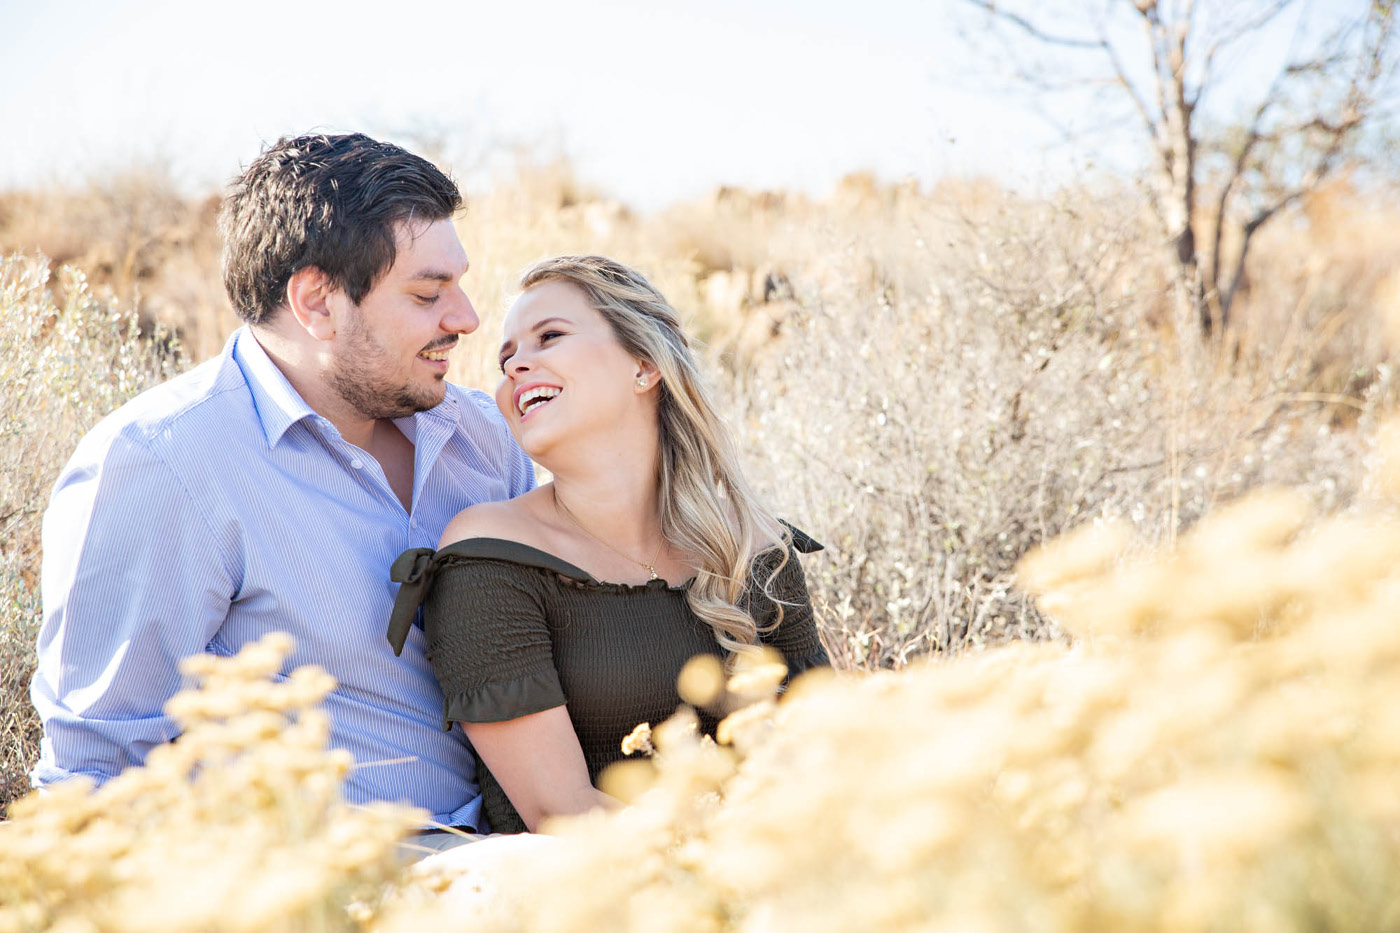 Mandie & George | Engagement shoot